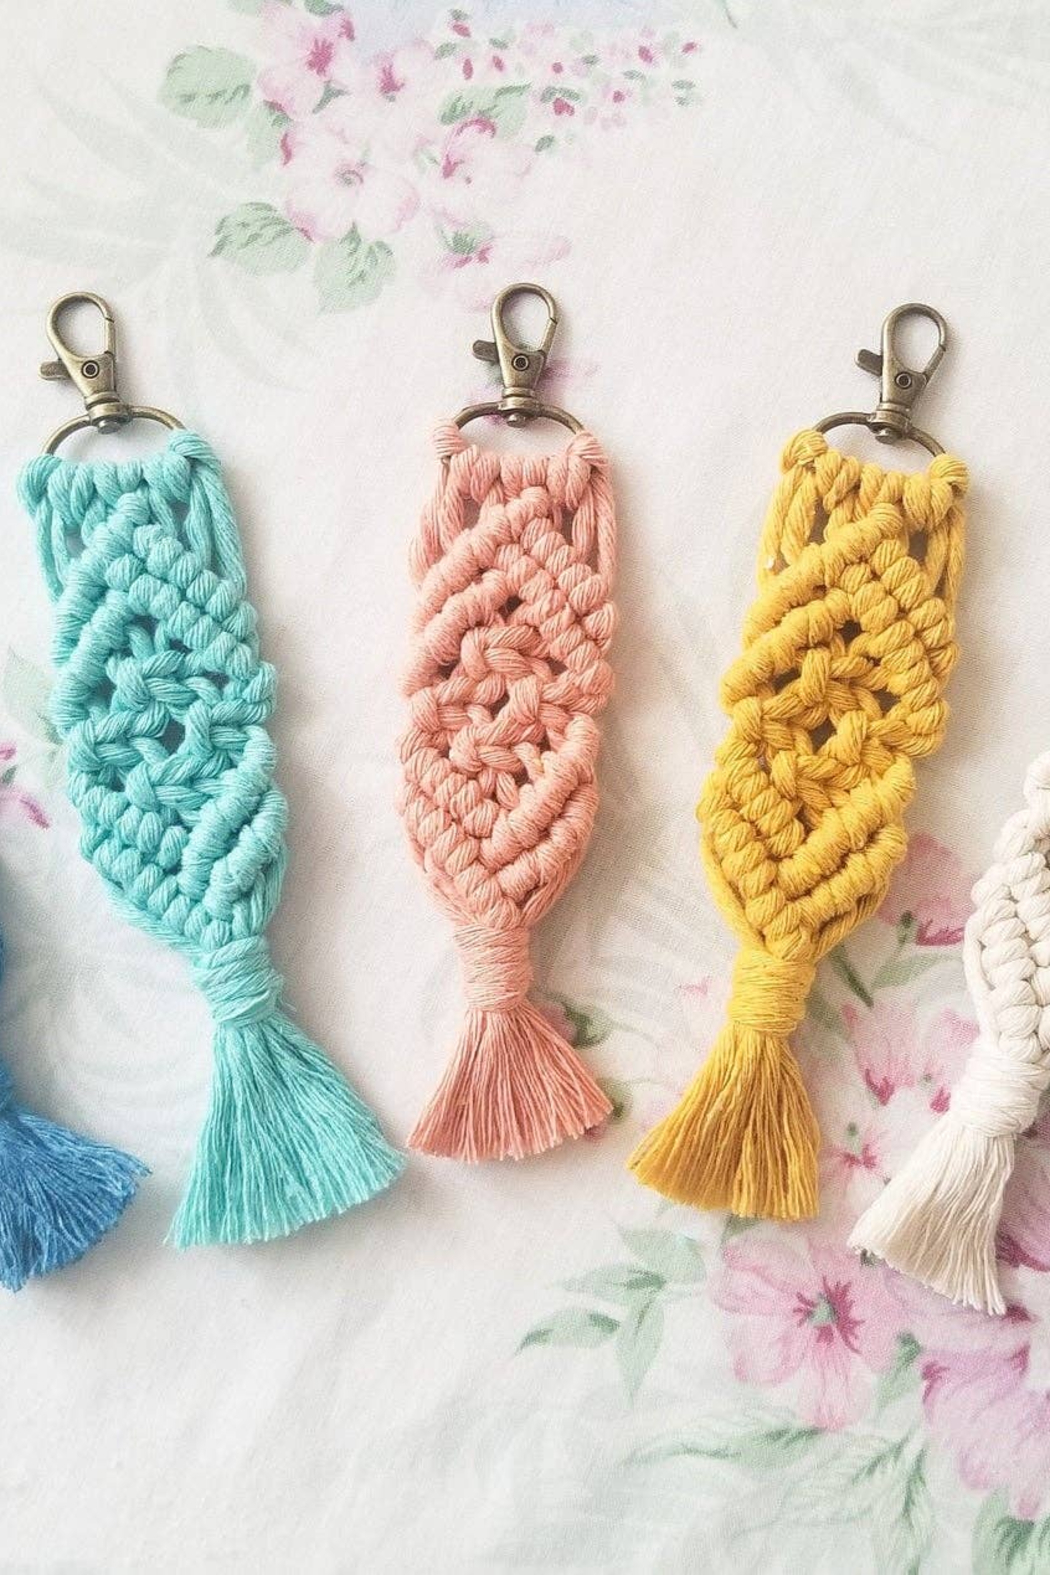 Dandelion and Lily Boho Macrame Keychain-Various Colors - Main Image